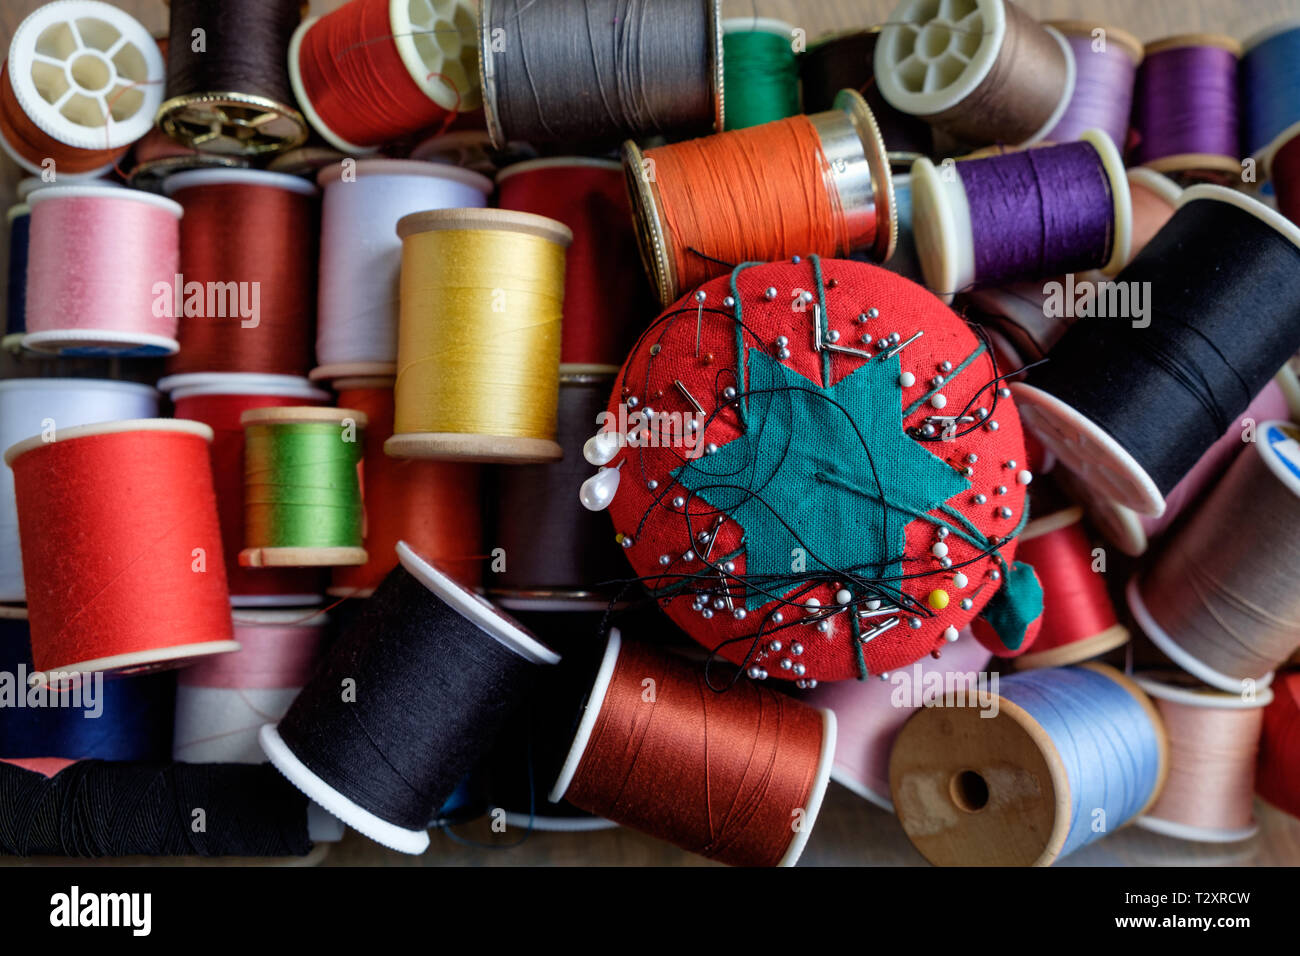 A tomato pin cushion with spools of colorful thread in a sewing kit. - Stock Image